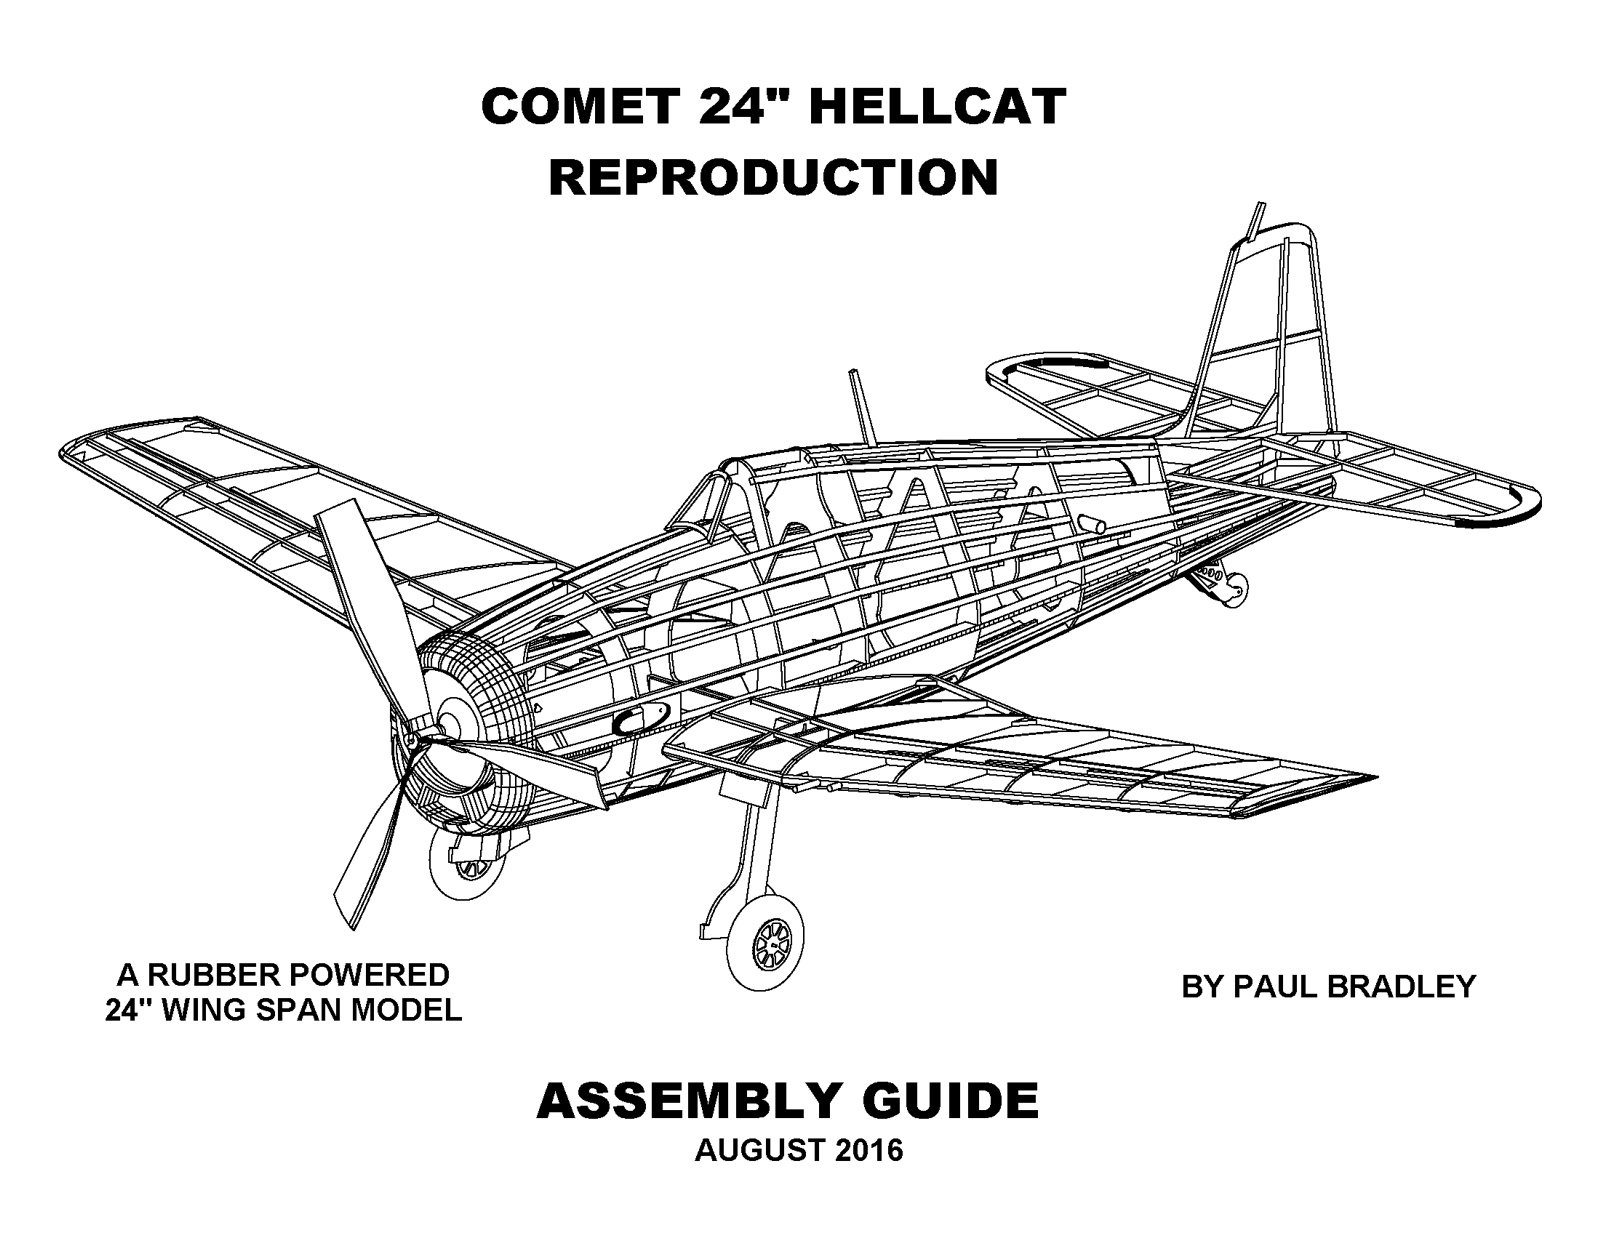 https://0201.nccdn.net/1_2/000/000/166/be8/Comet-24-inch-Hellcat-Assembly-Guide-1600x1236.jpg